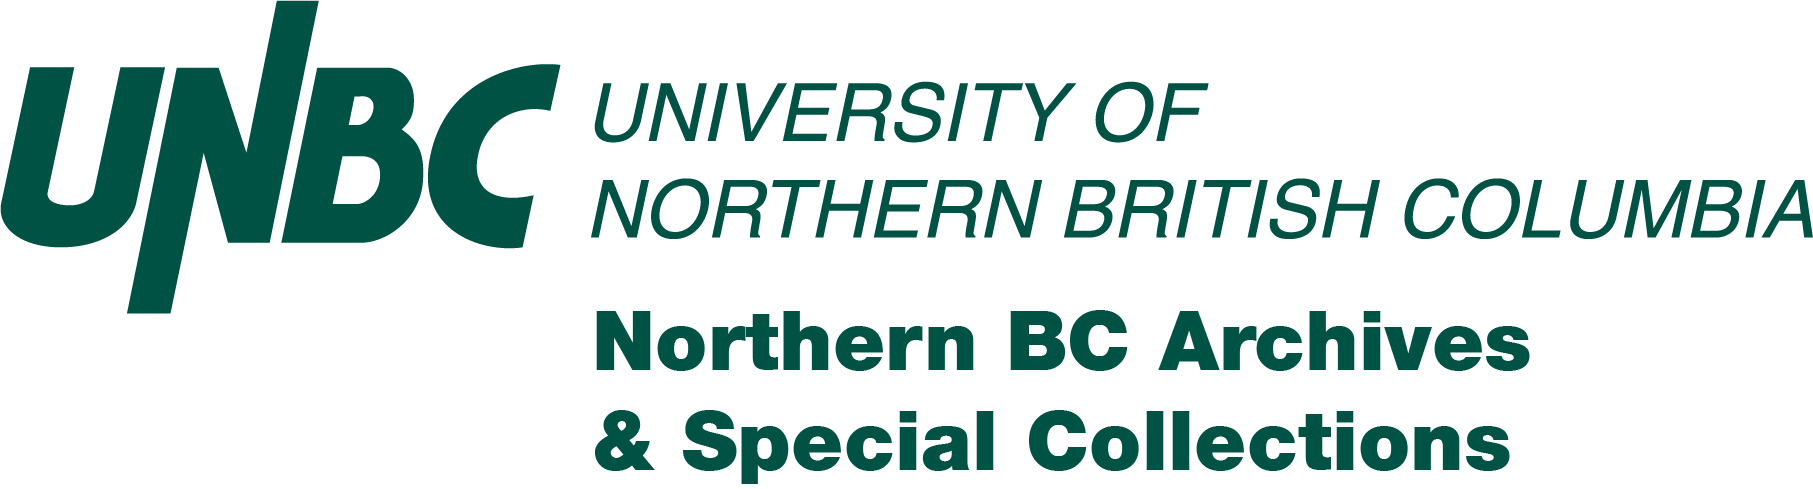 UNBC Northern BC Archives Logo